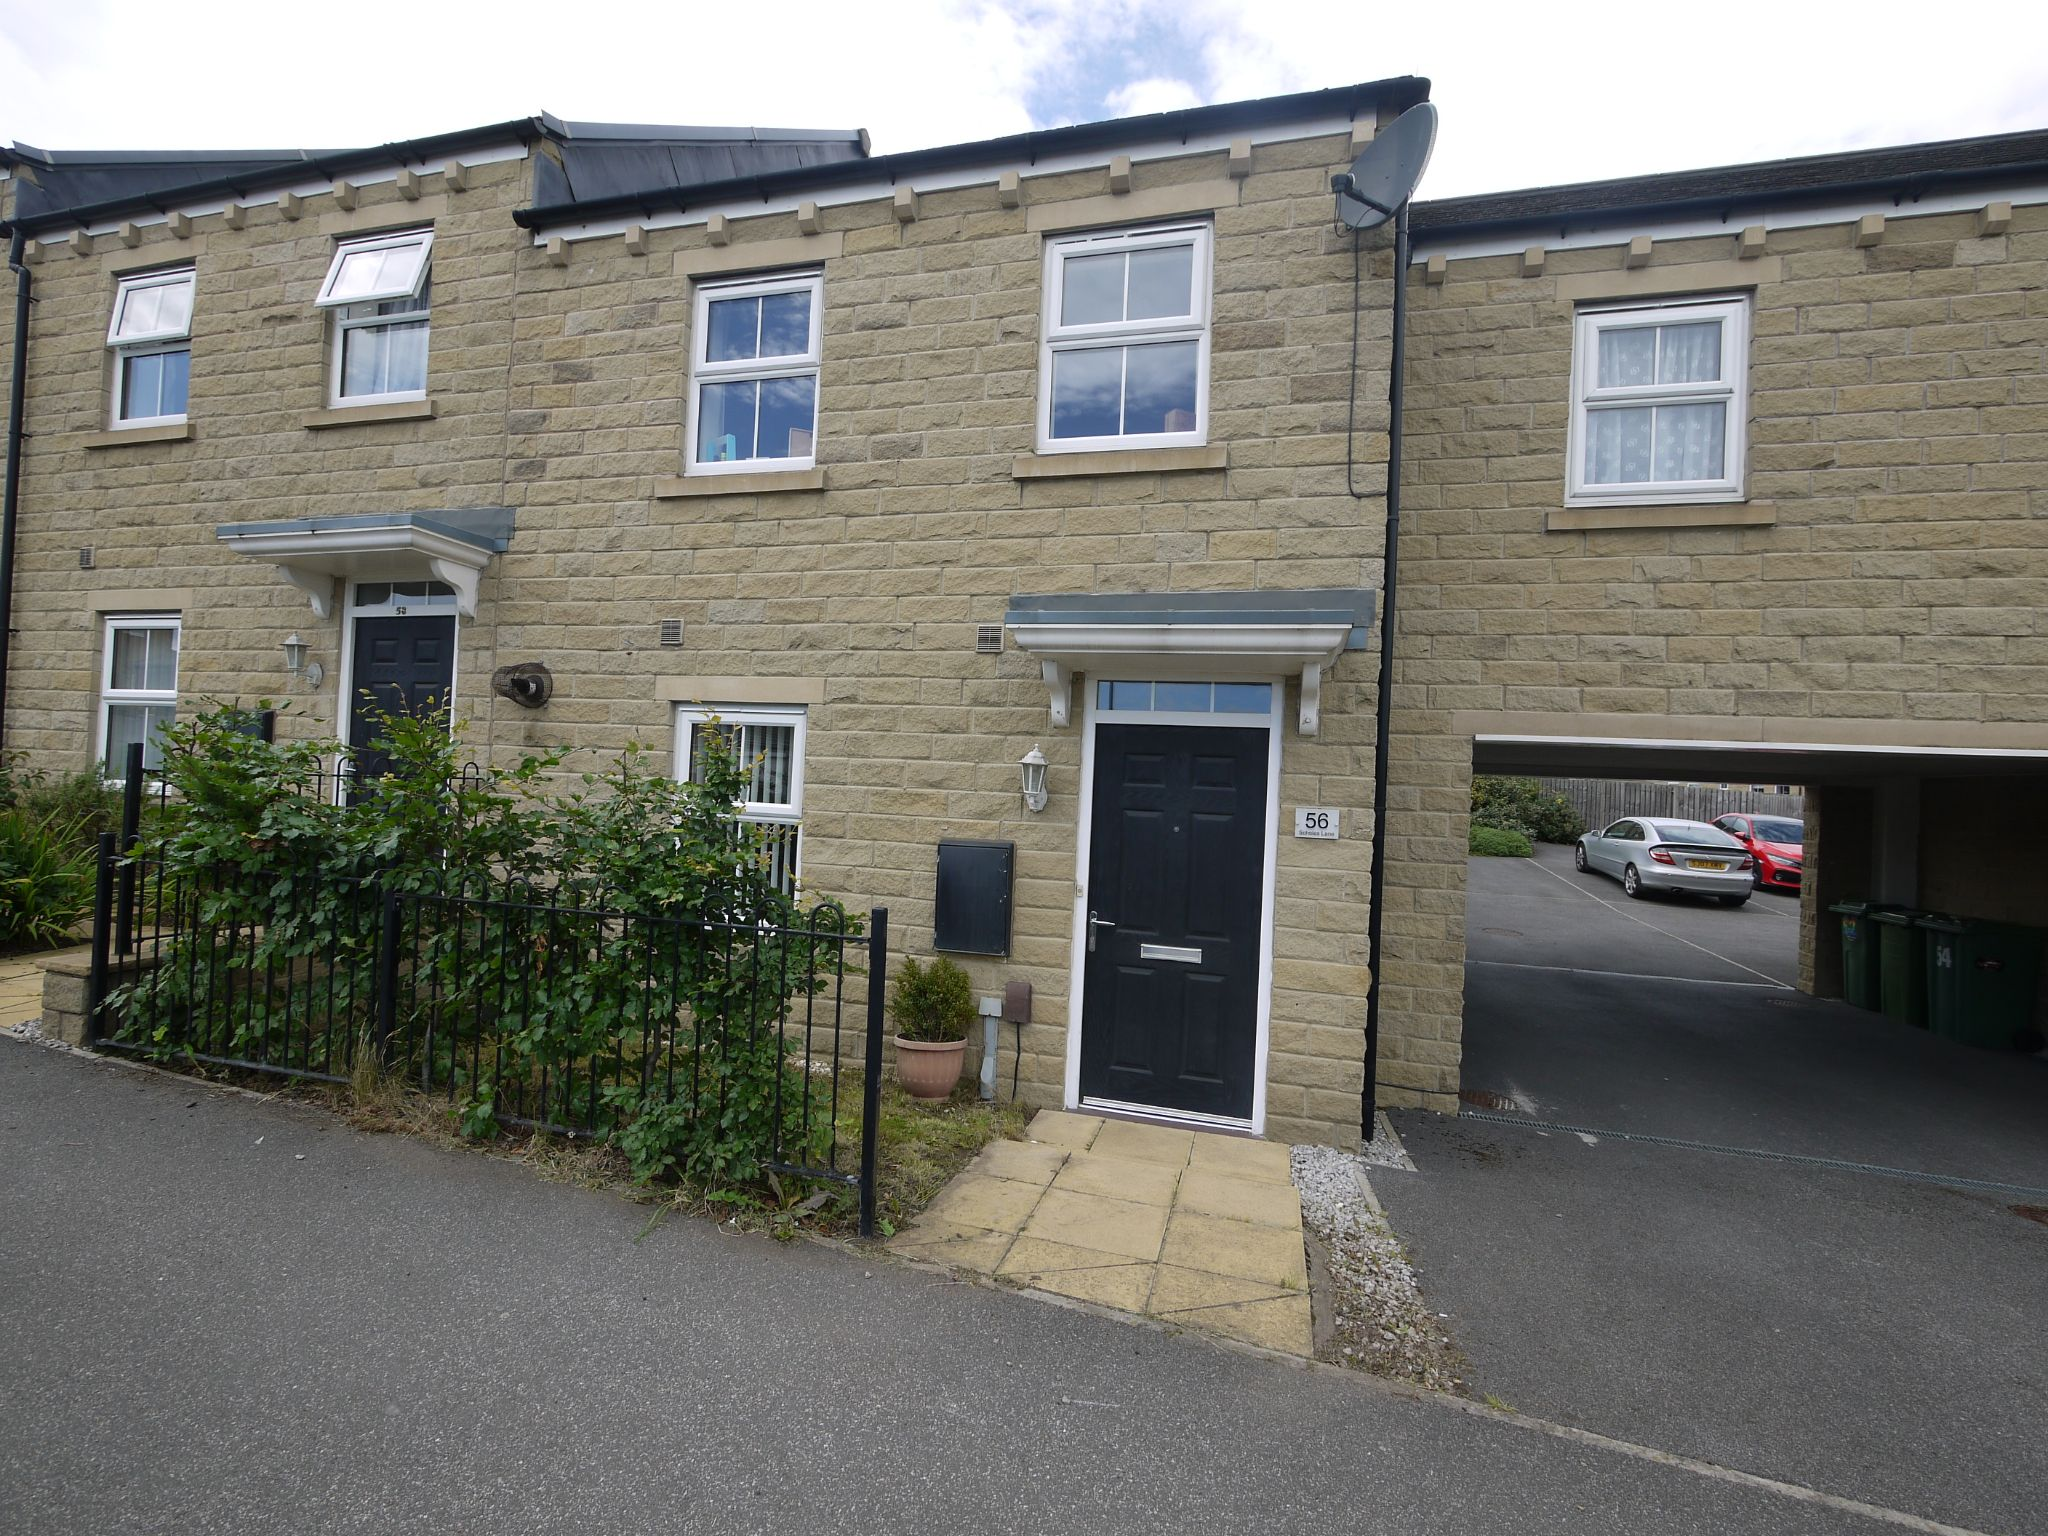 3 bedroom mid terraced house SSTC in Cleckheaton - Main.